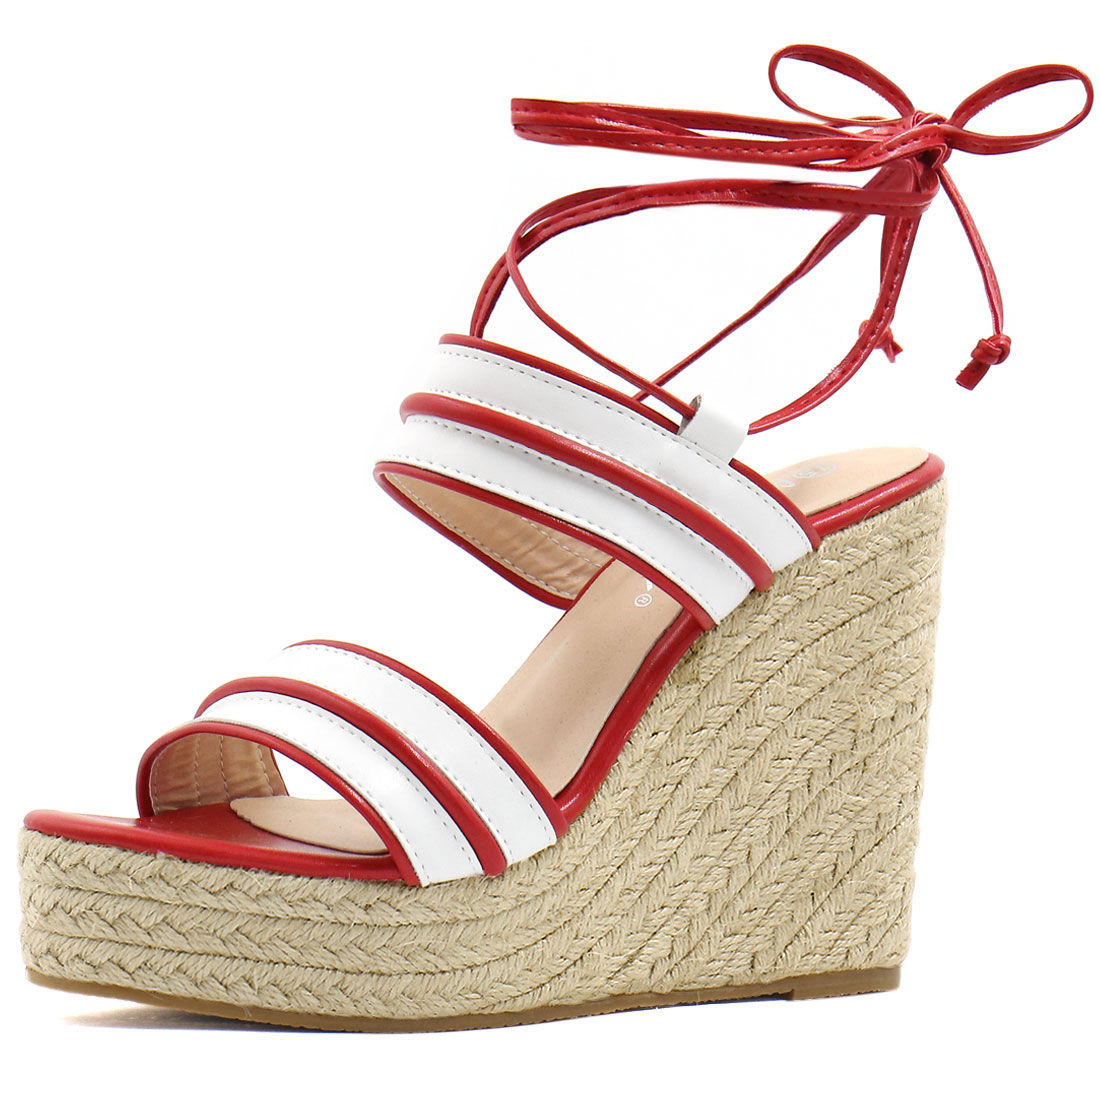 Women Striped Ankle Tie Espadrille Wedge Sandals White Red US 6.5